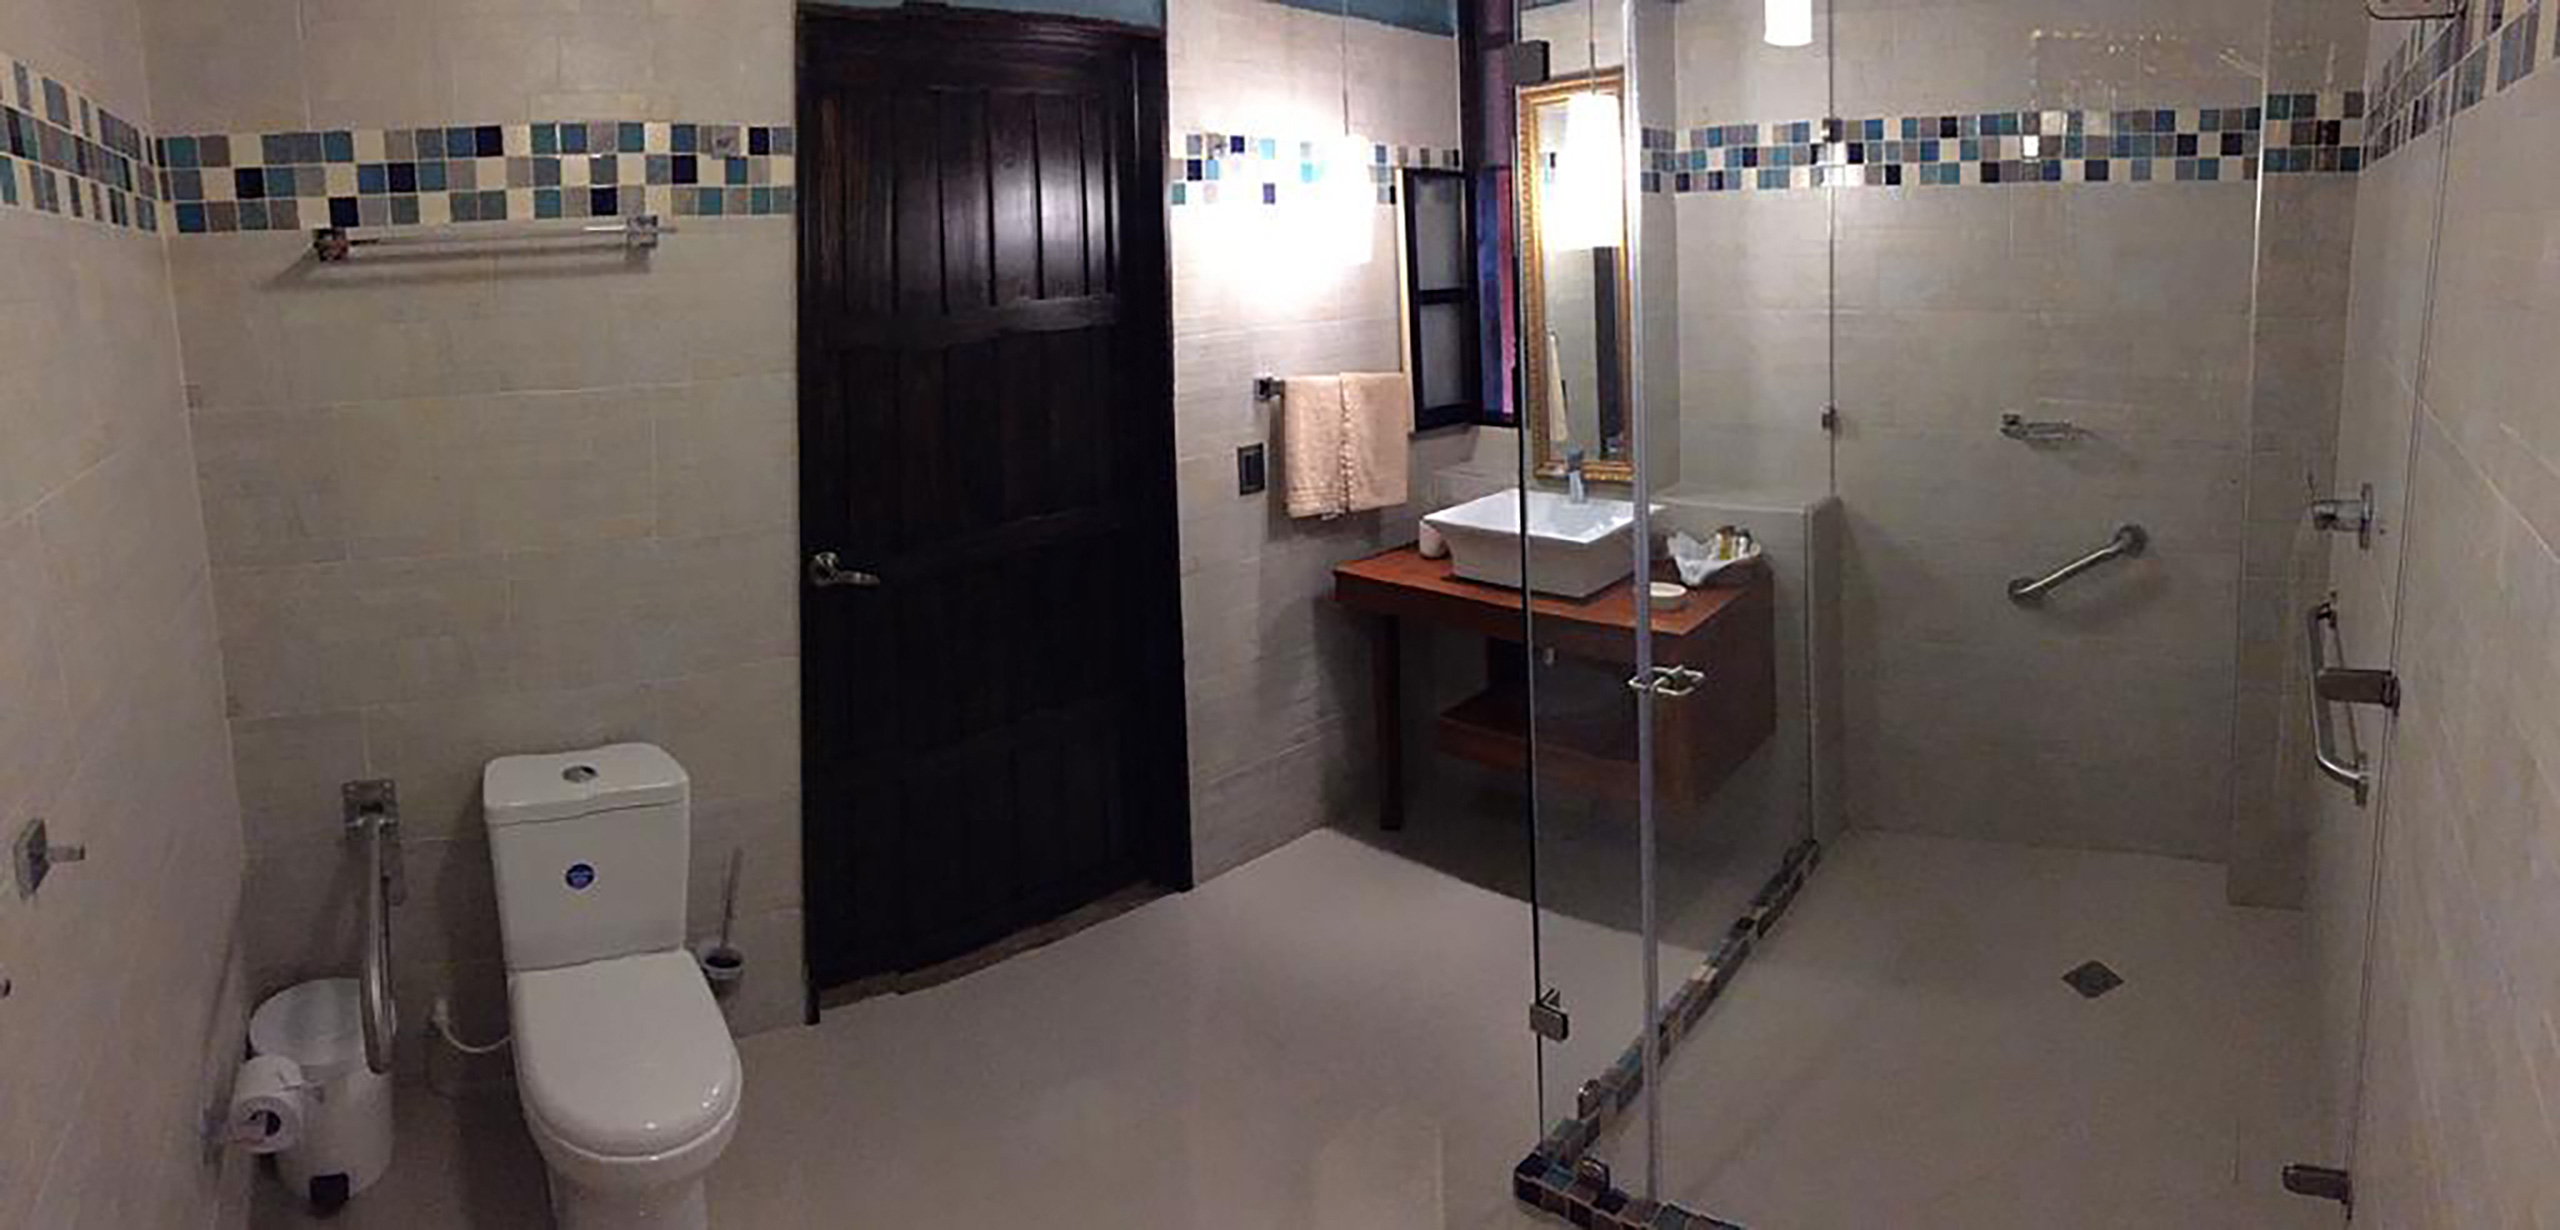 A large spacious bathroom at the hotel Monasterio with a large glasses walk I shower with ADA handrails in the shower